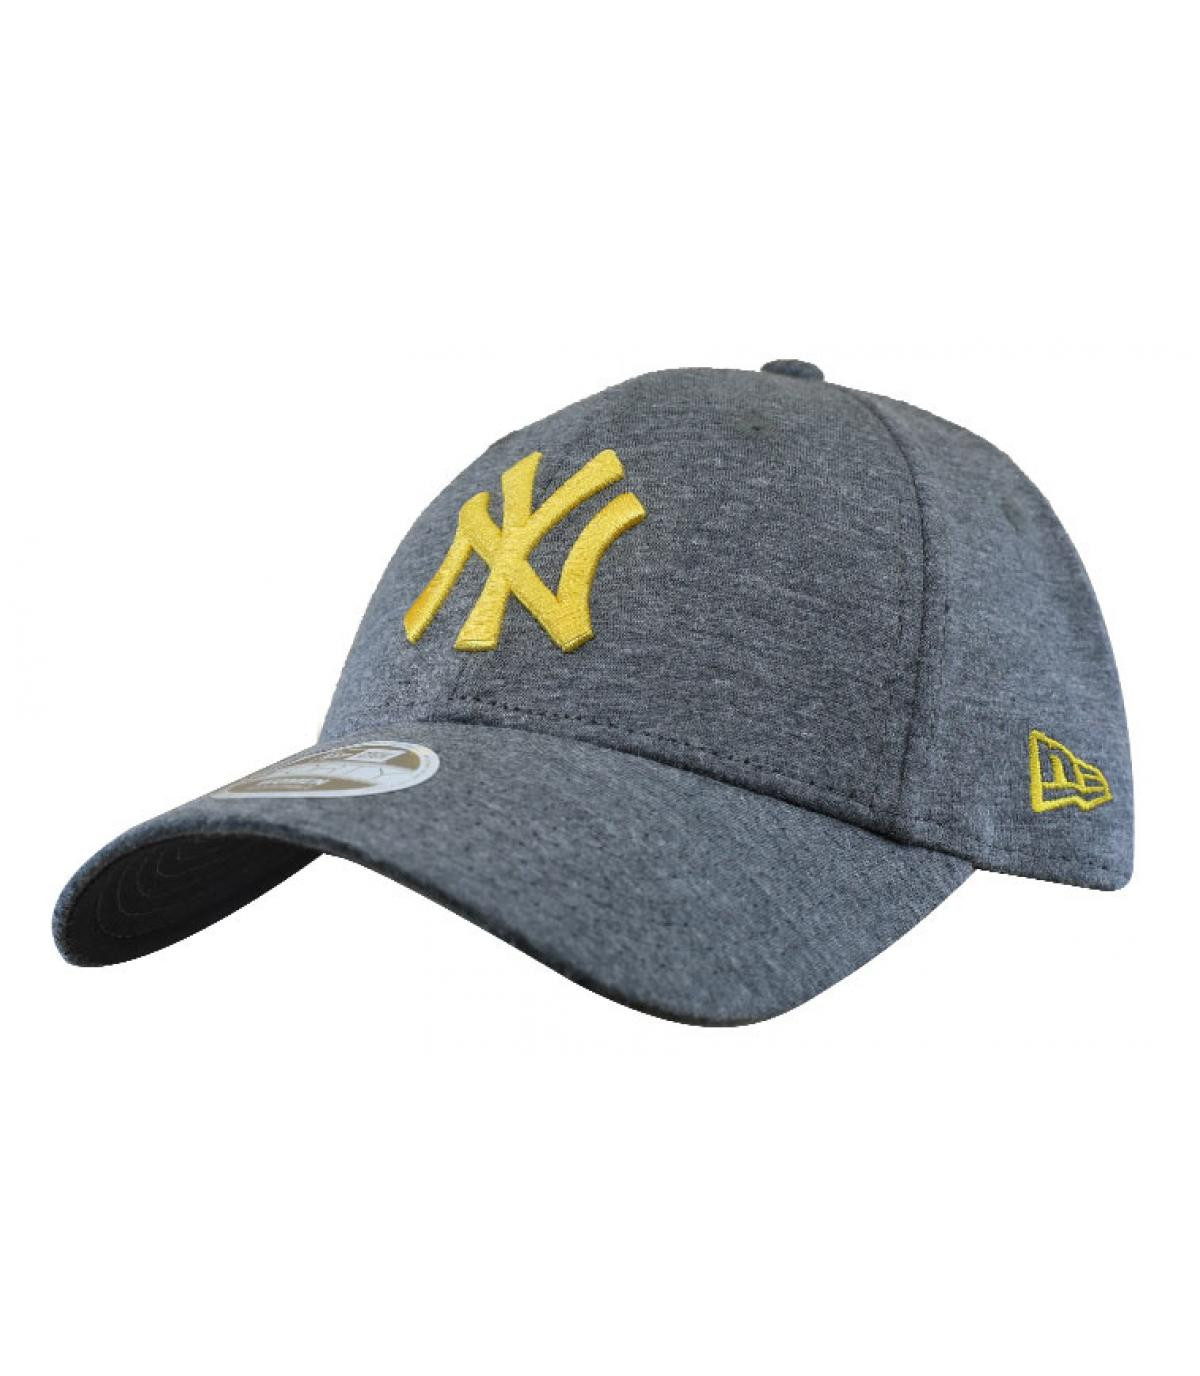 casquette femme NY gris or